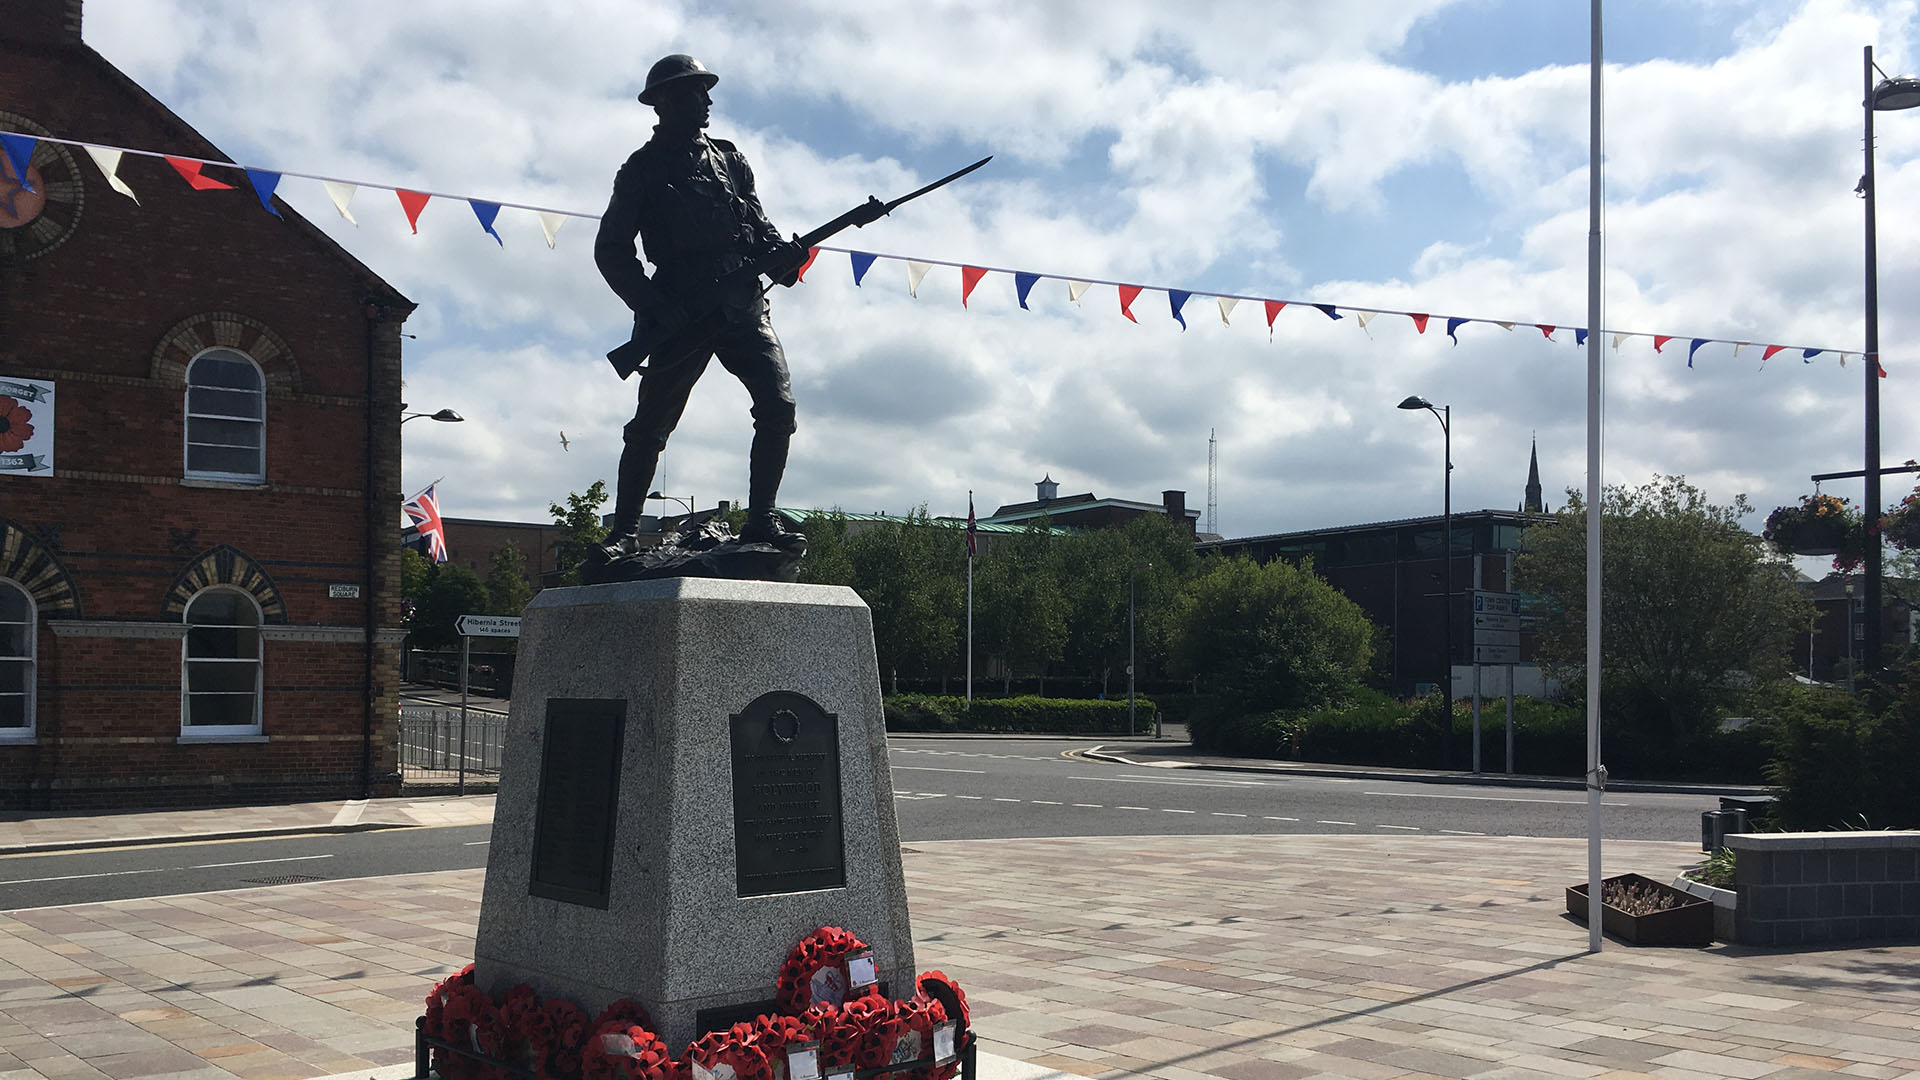 War Memorial in Holywood, Co. Down